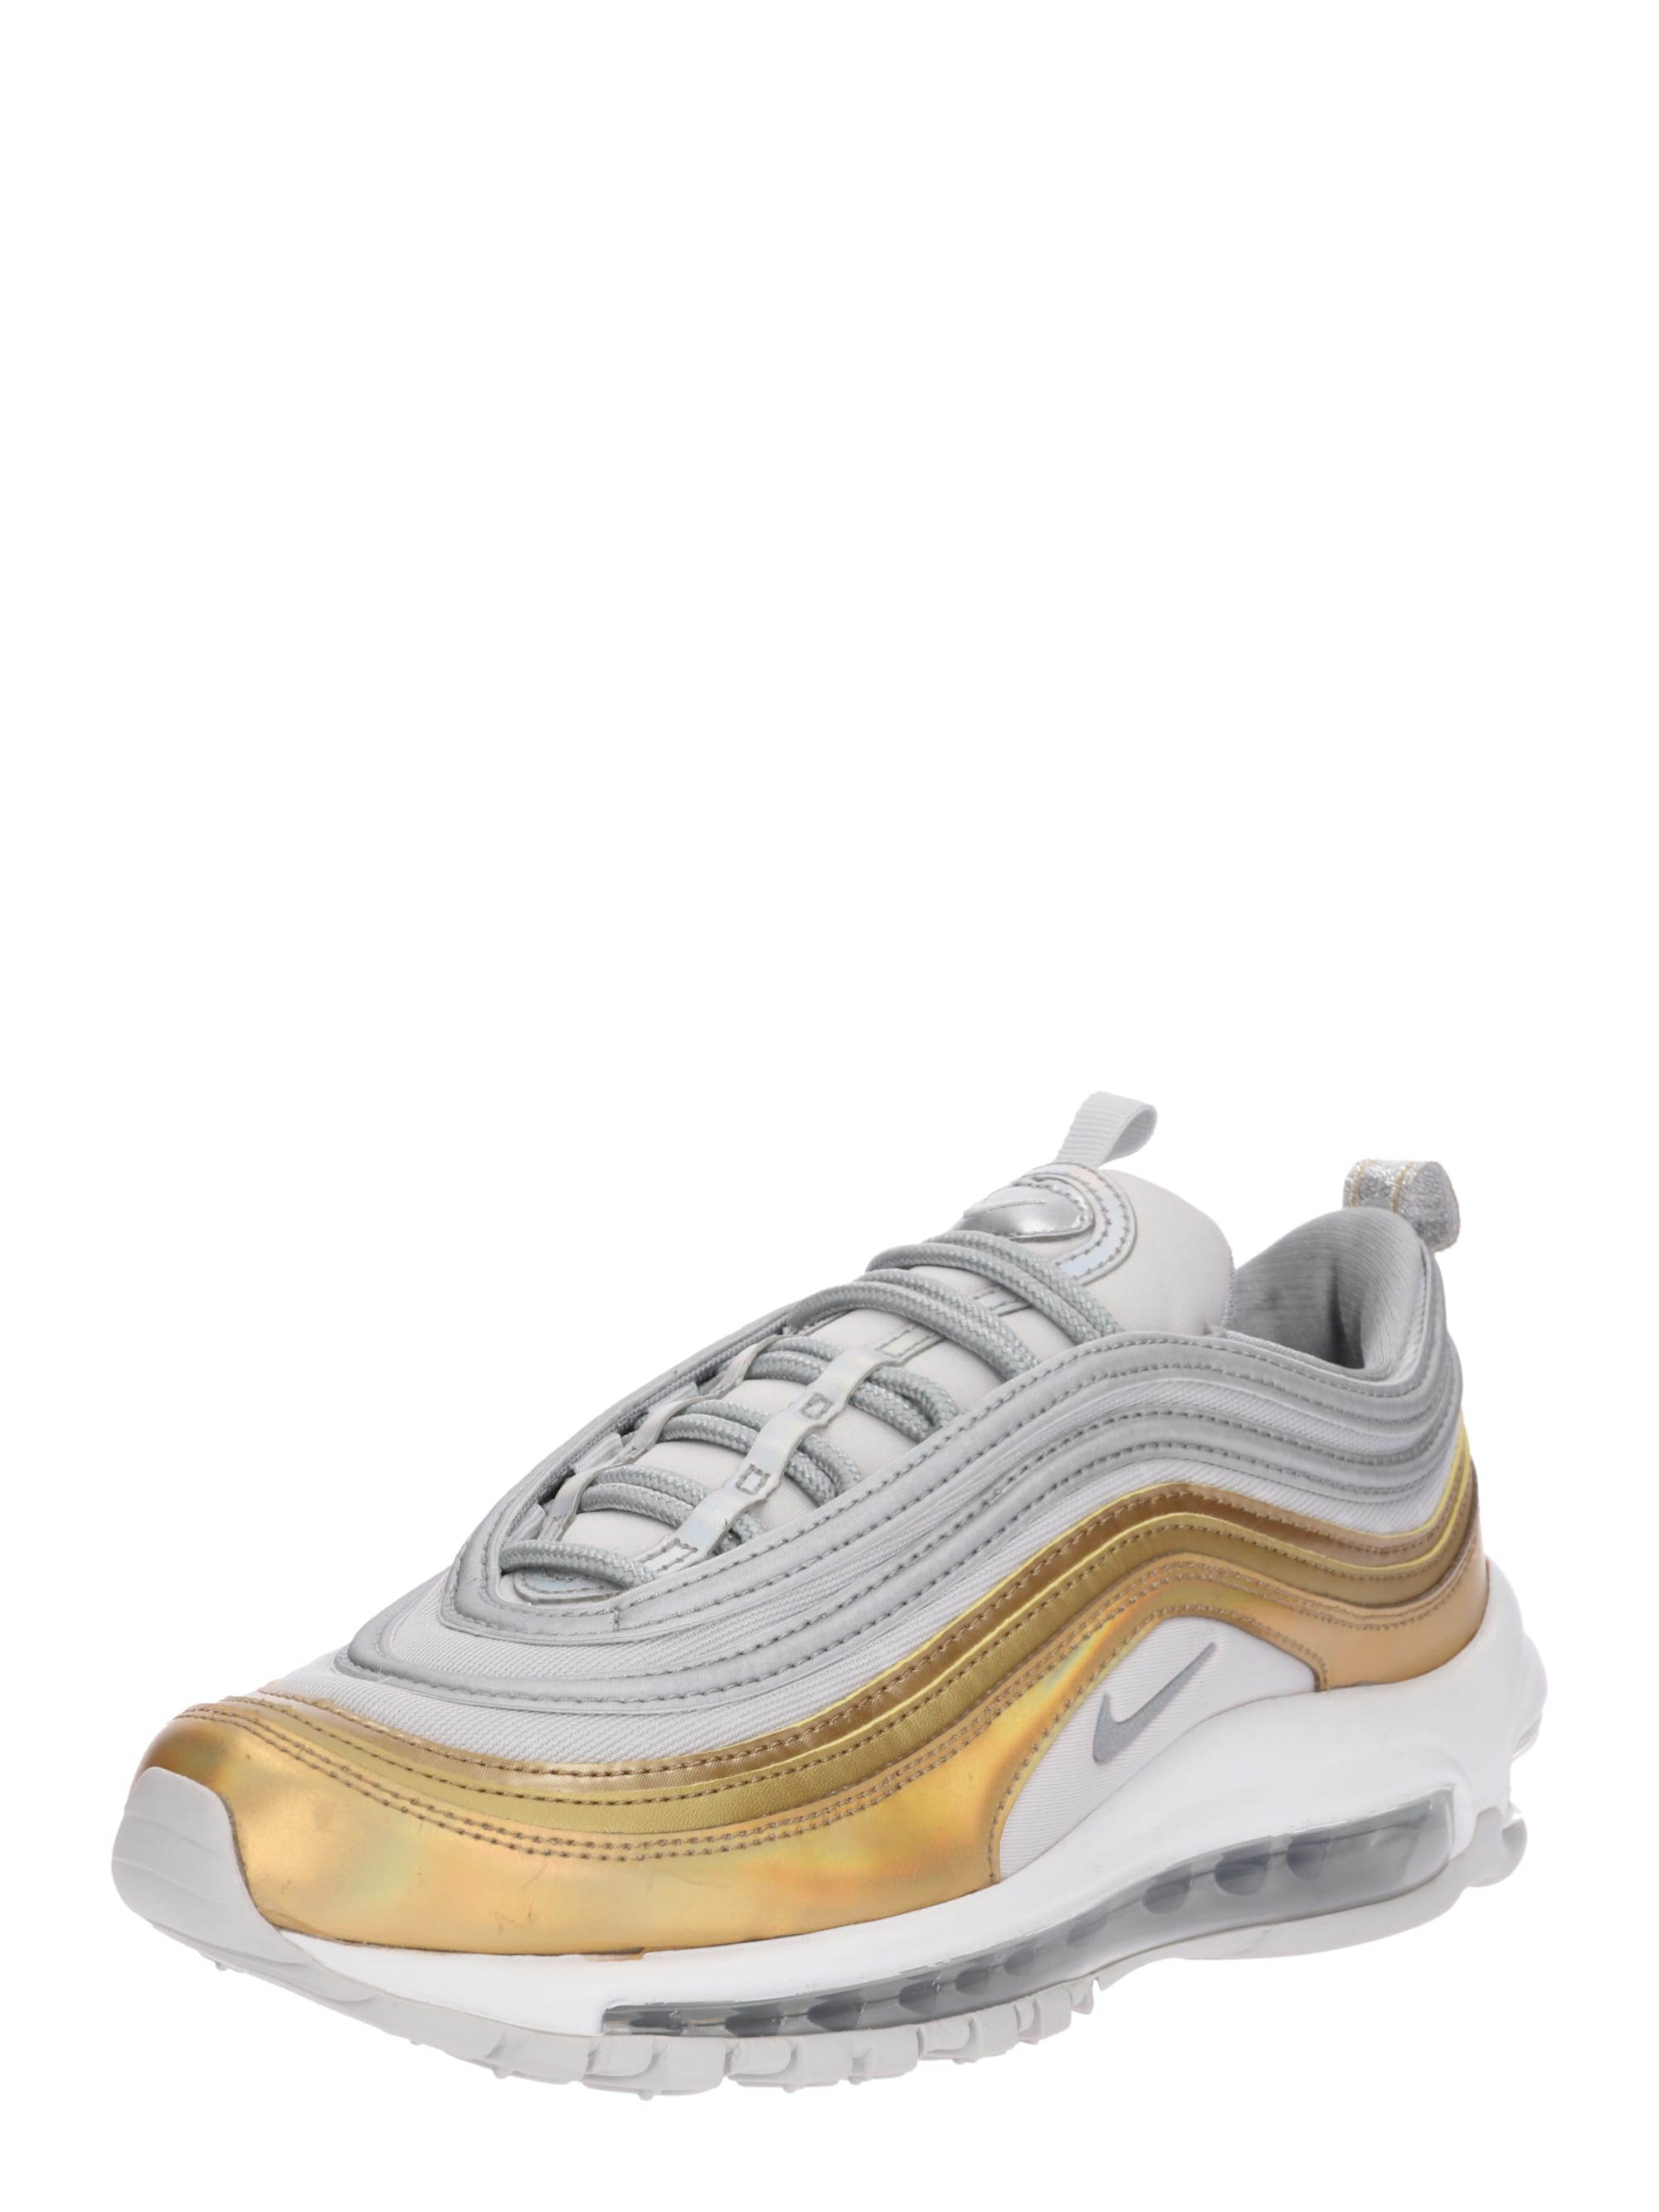 nike sportswear - Sneaker ´Air Max 97 Special Edition´